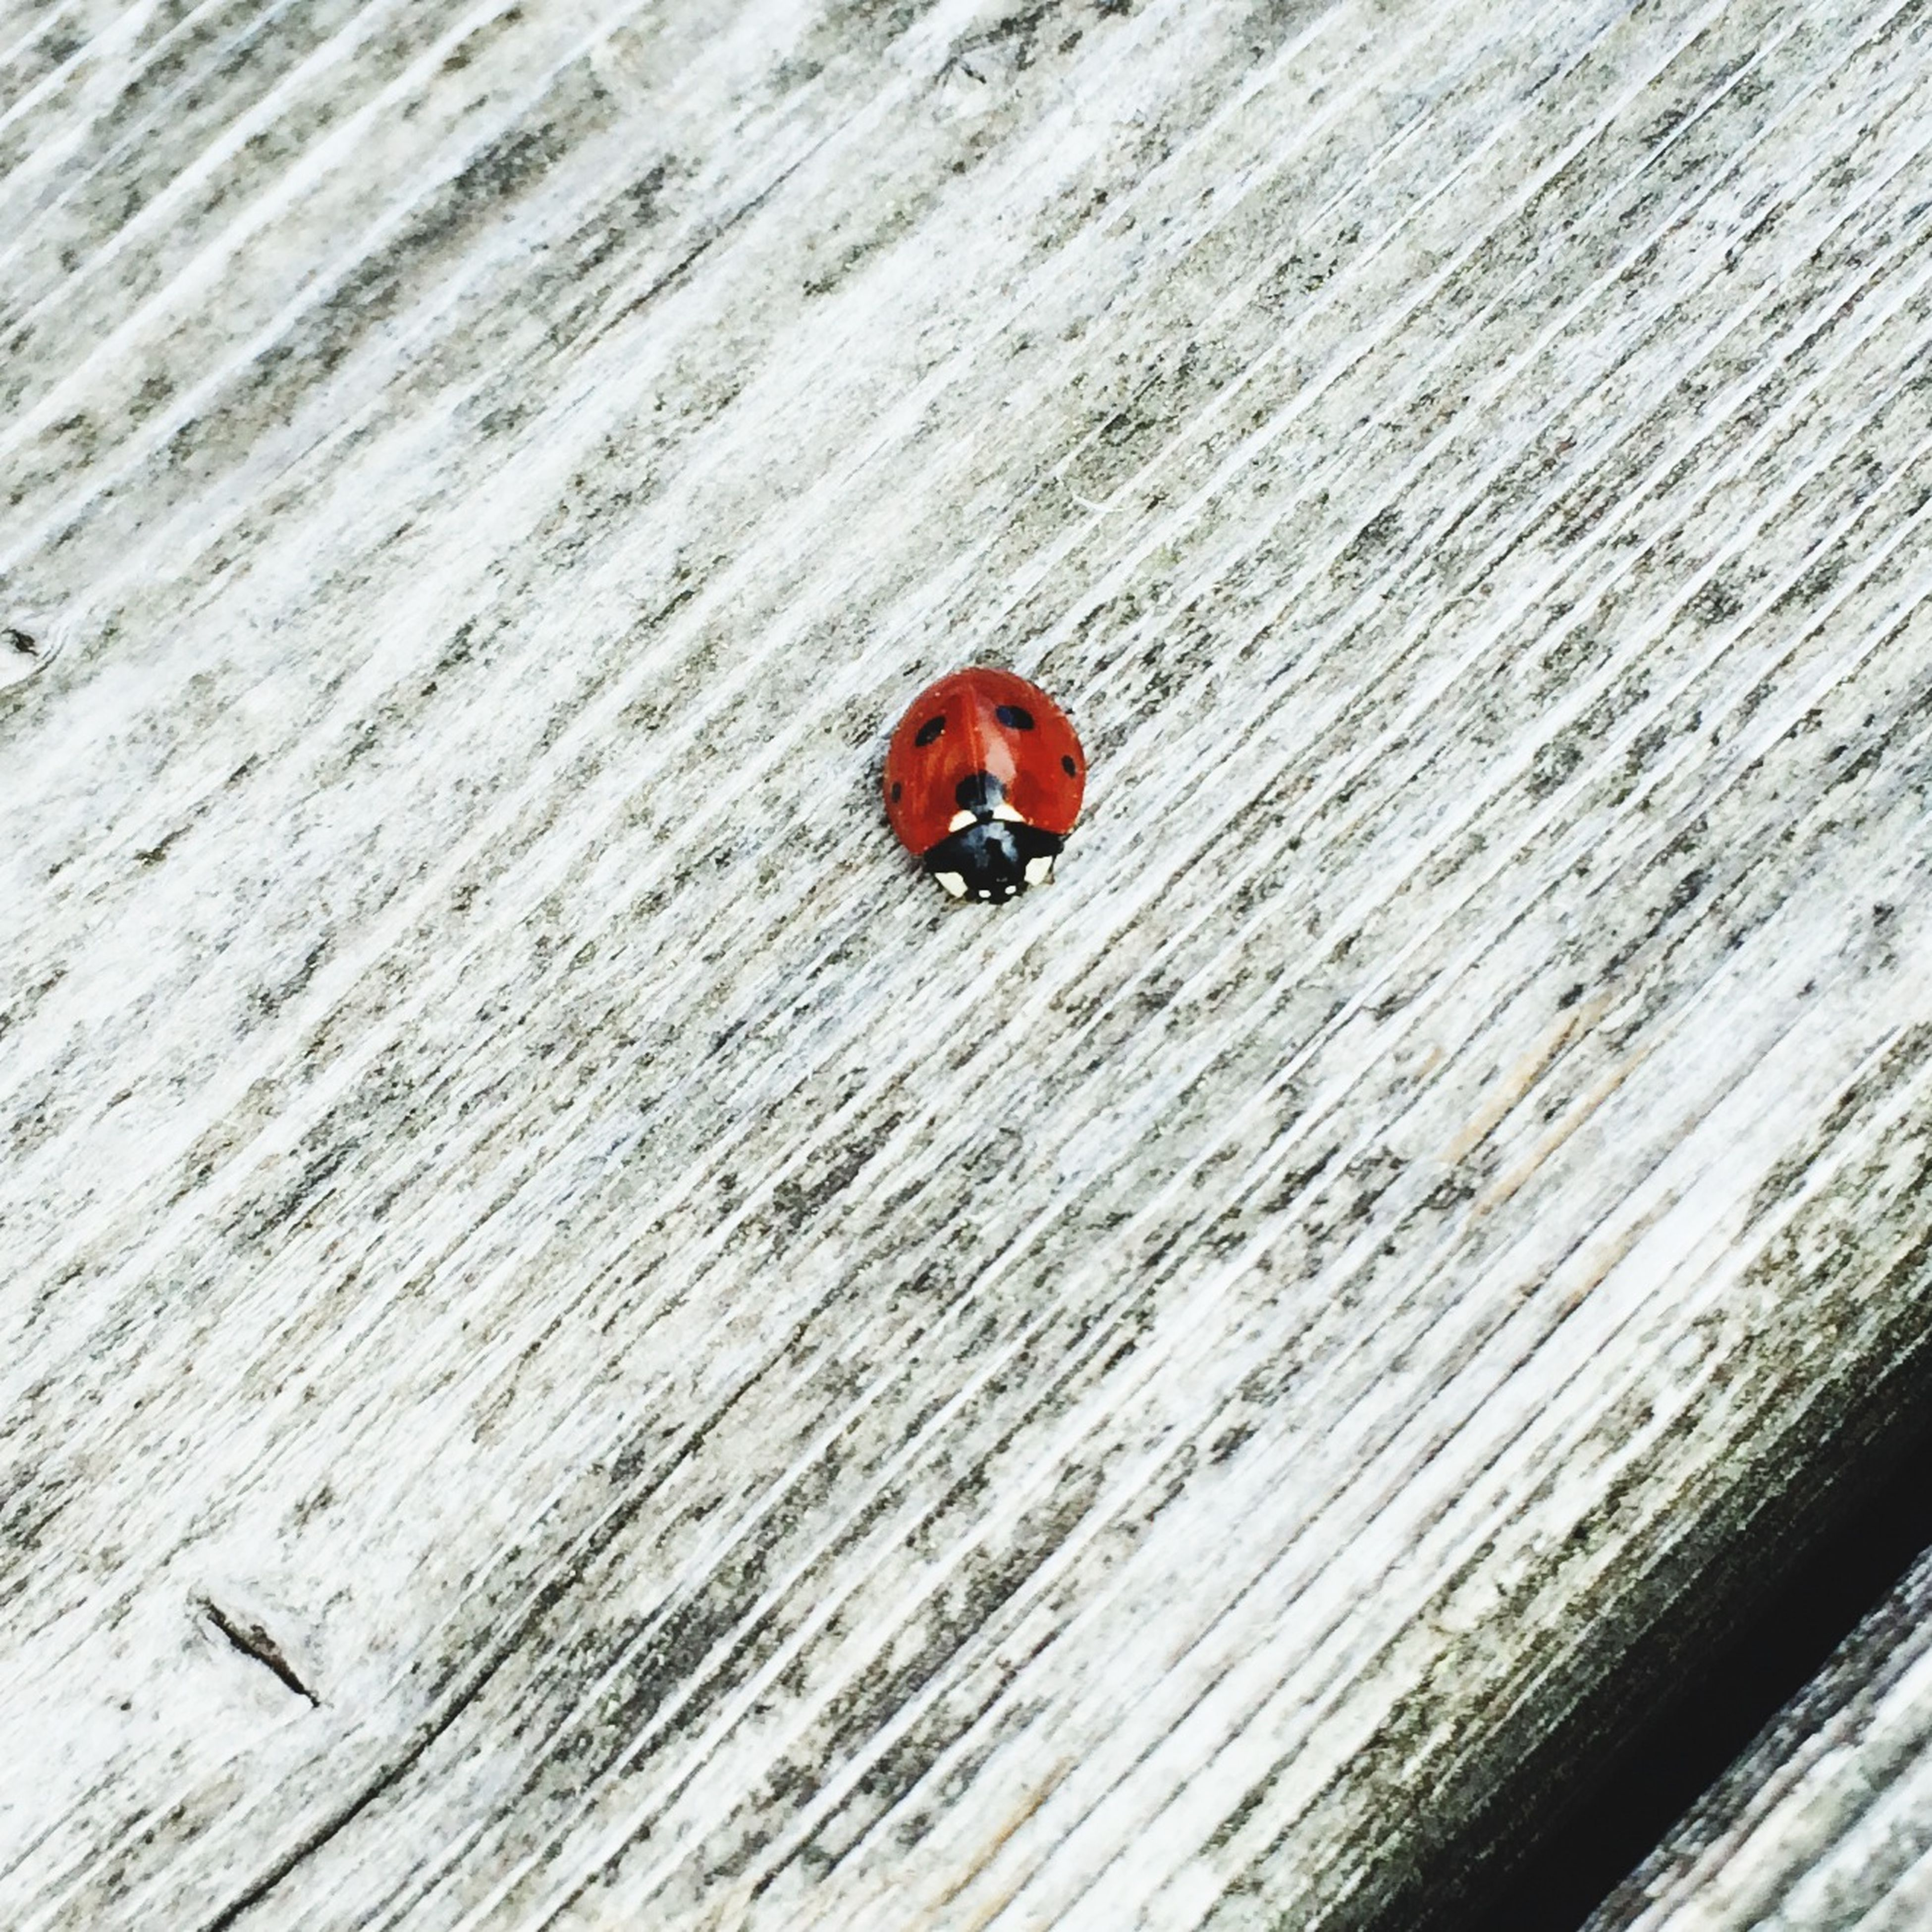 insect, animal themes, one animal, animals in the wild, ladybug, wildlife, red, wood - material, high angle view, close-up, textured, outdoors, no people, day, nature, wooden, selective focus, plank, wall - building feature, full length